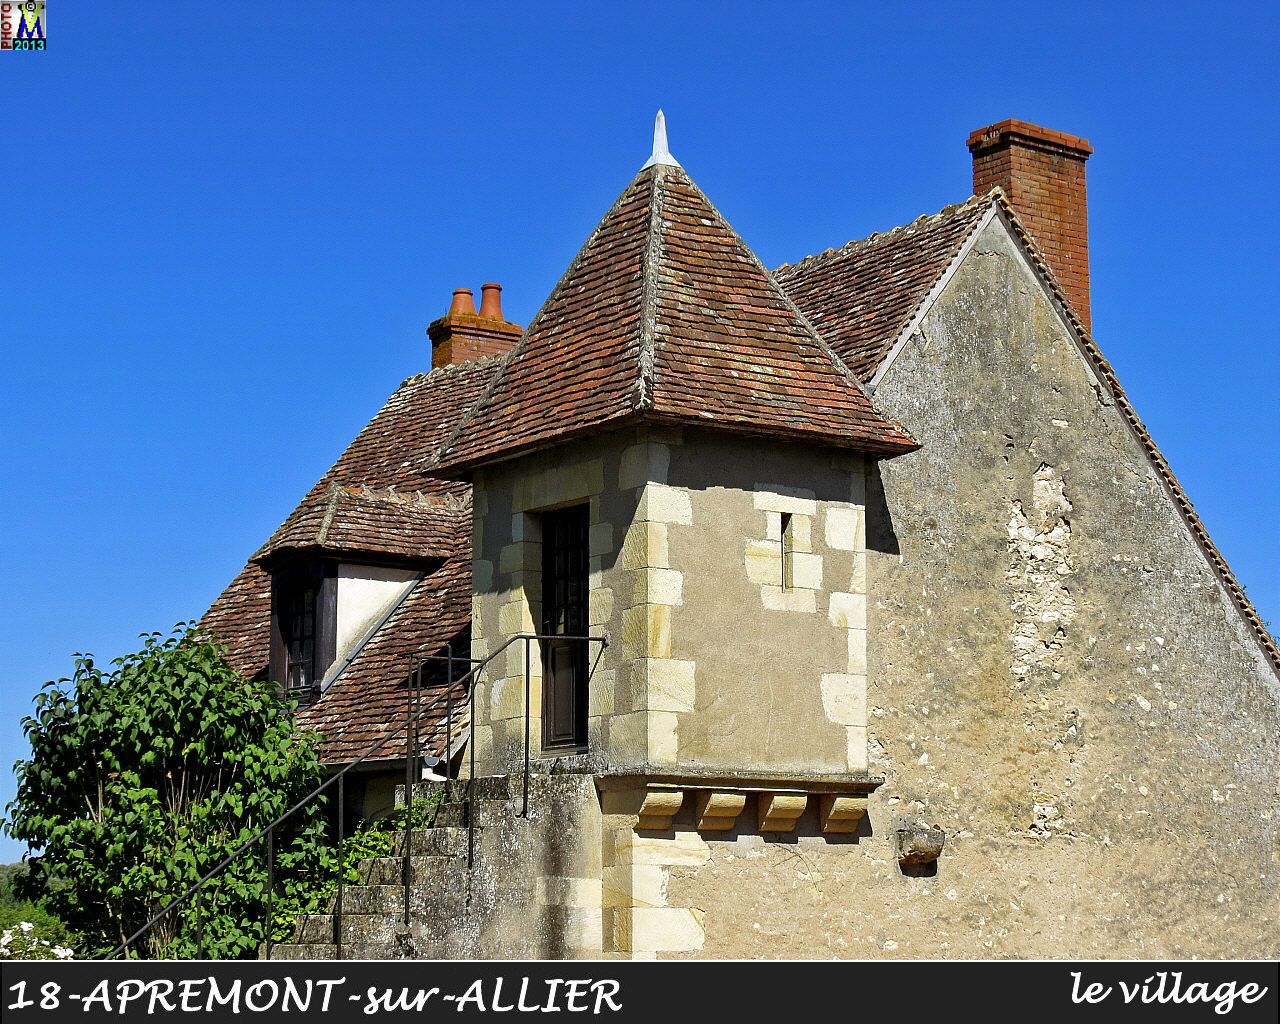 18APREMONT-ALLIER_village_144.jpg